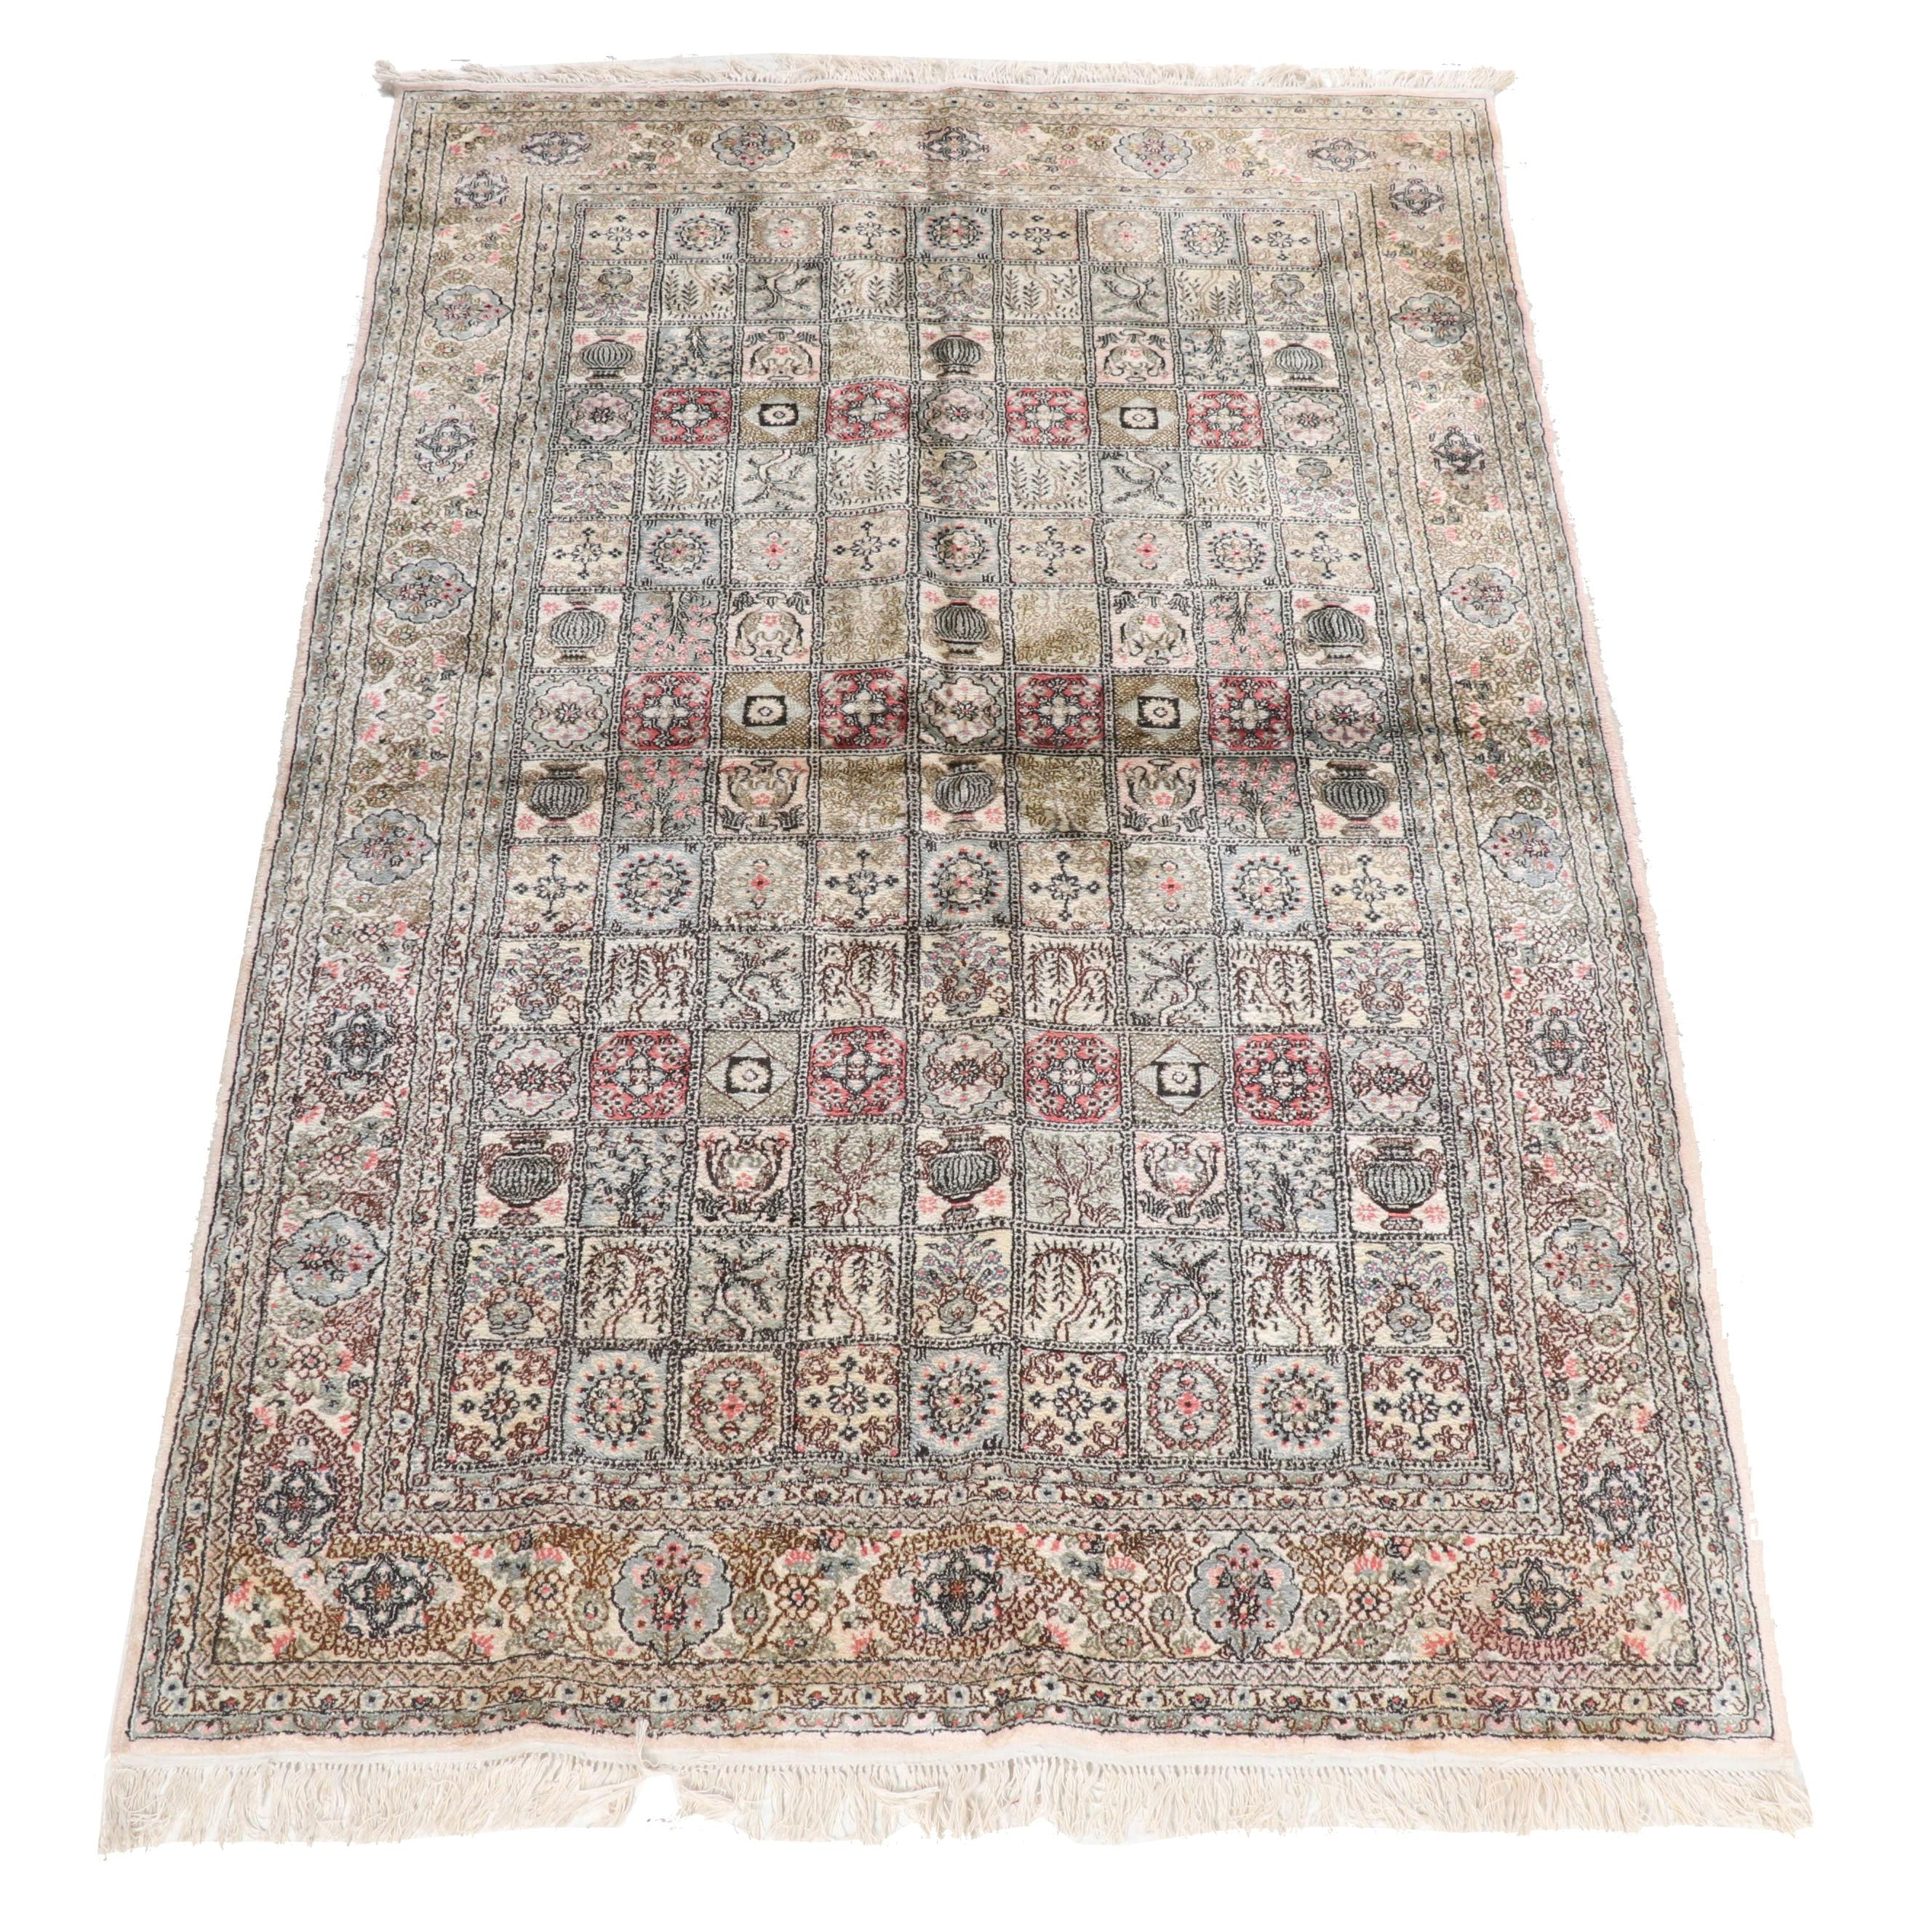 Hand-Knotted Indo-Persian Bakhtiari Style Artificial Silk Rug